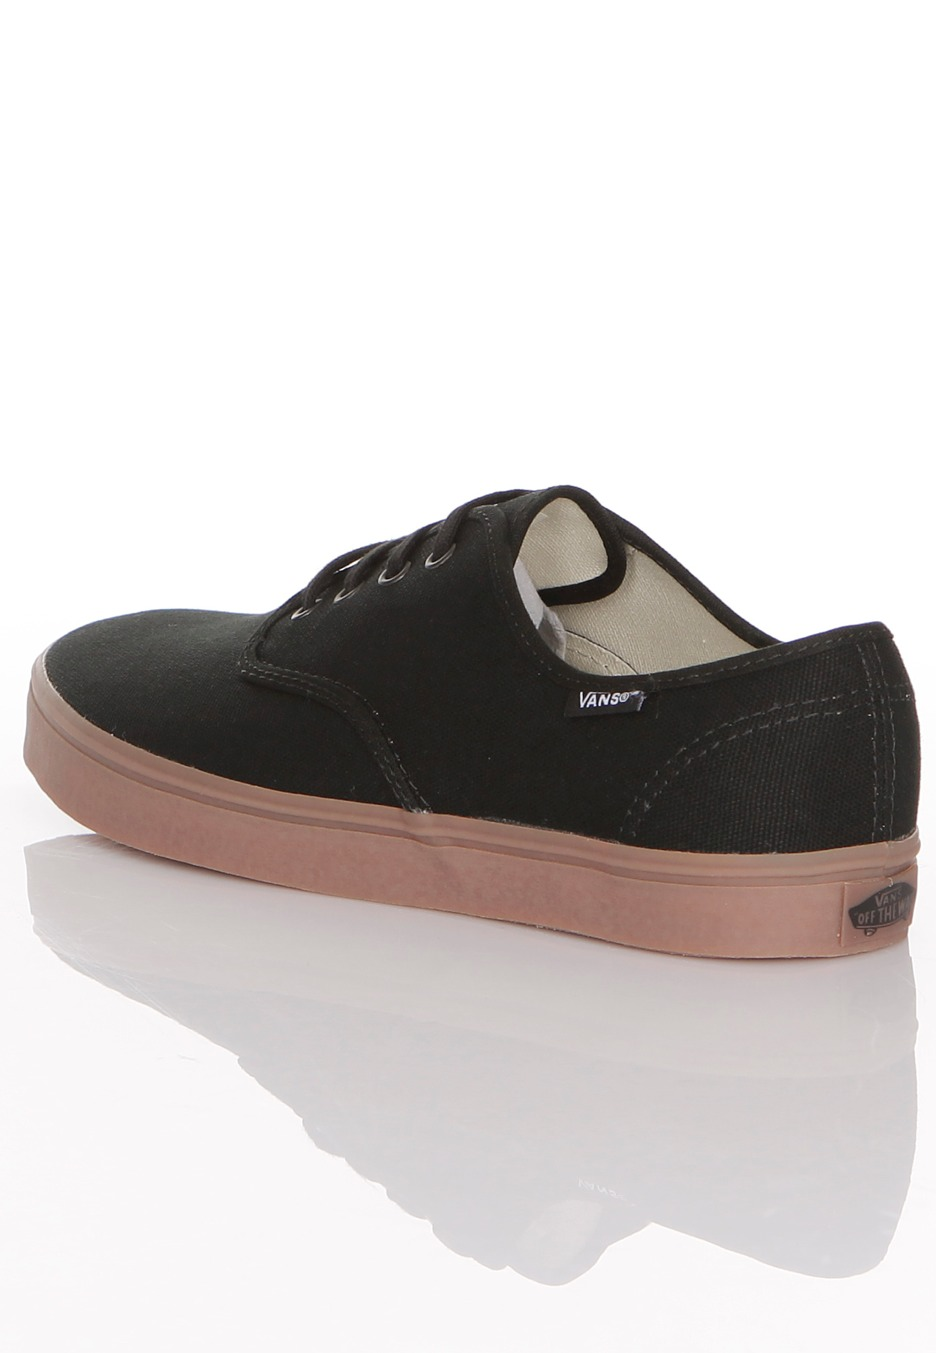 28c6540a164 Vans - Madero Black Gum - Chaussures - Impericon.com FR